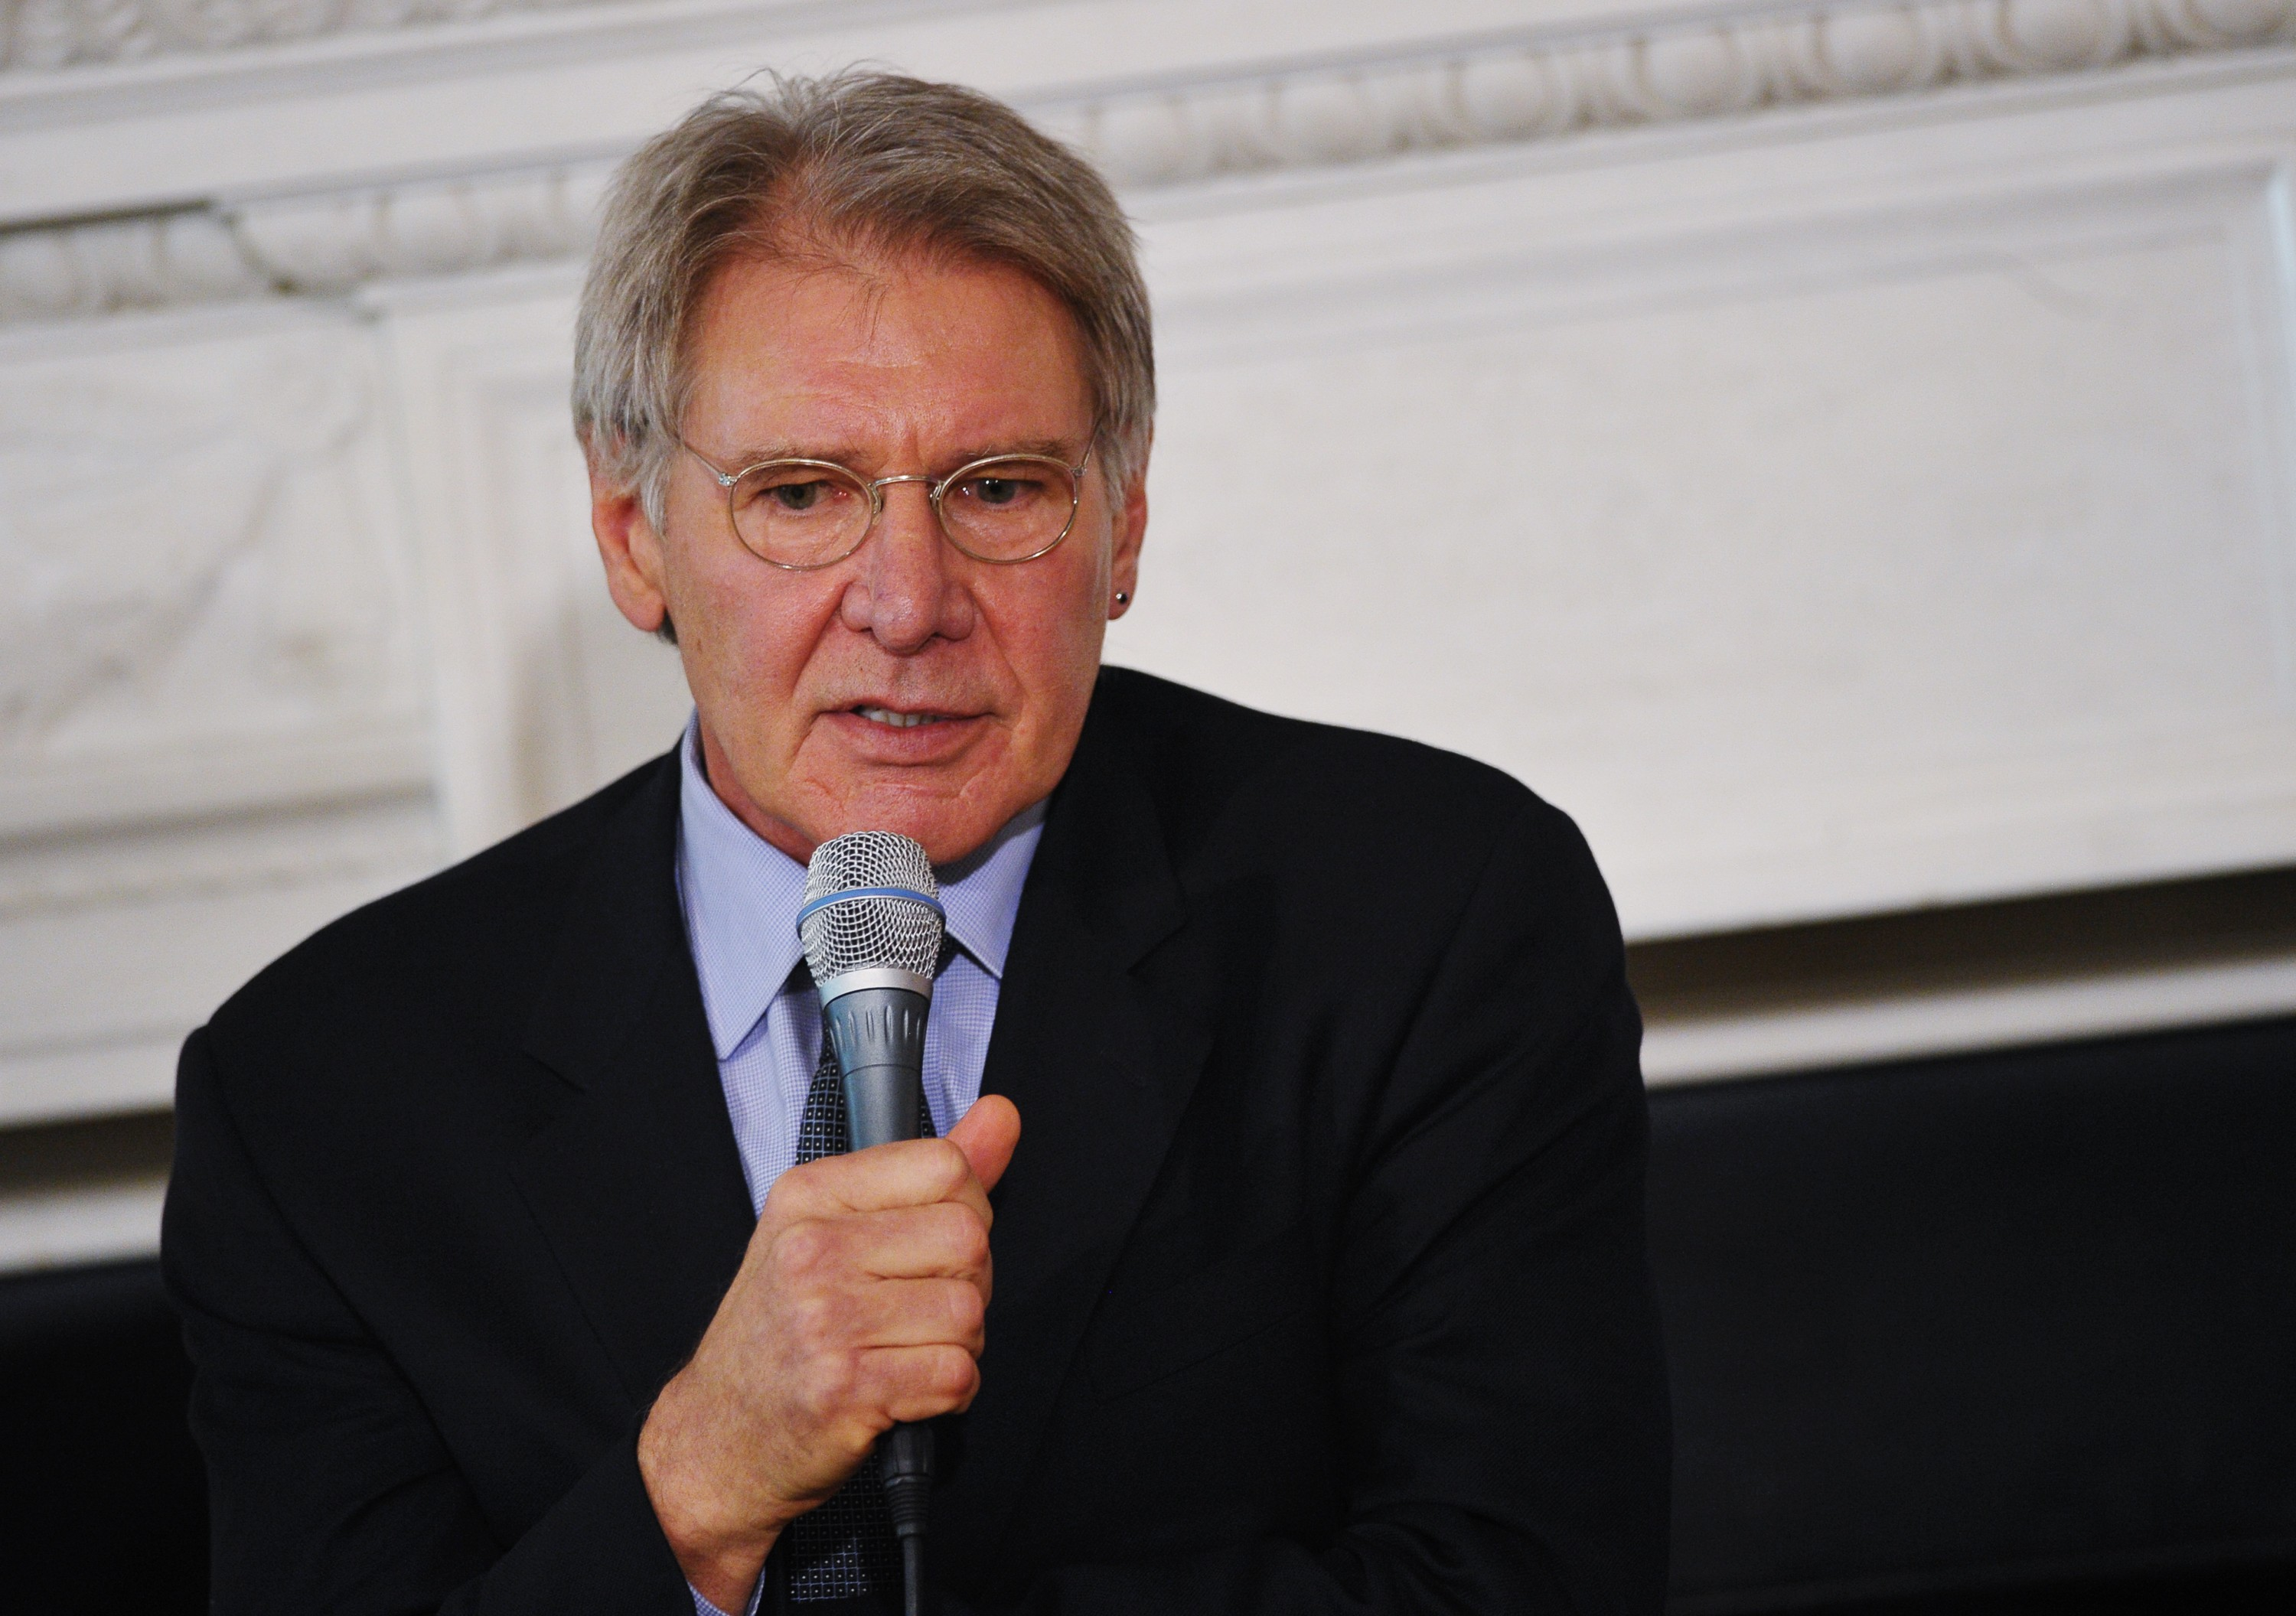 Harrison Ford signs on for more Star Wars films as Han Solo after Episode 7?